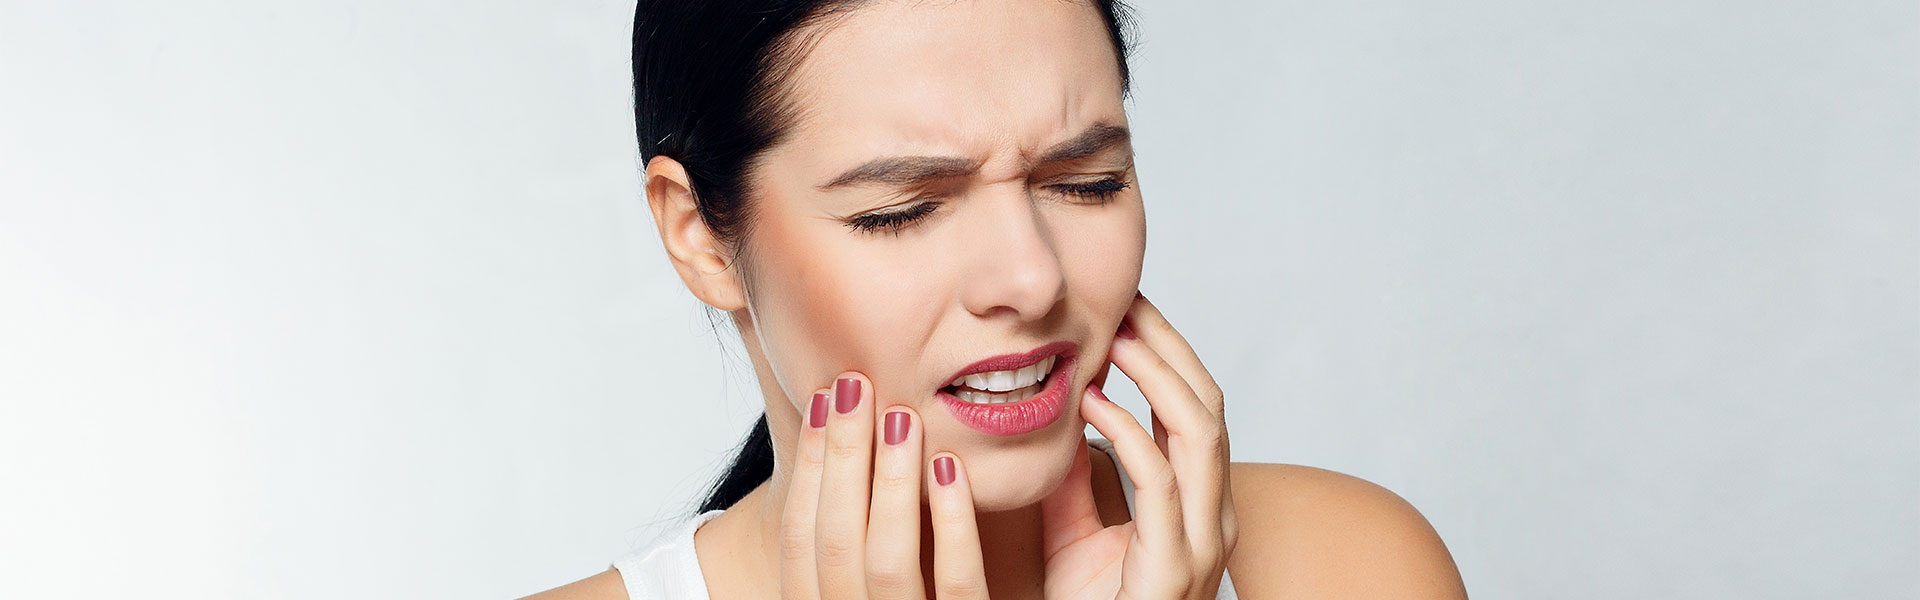 Root Canal Treatments in Dixon, IL